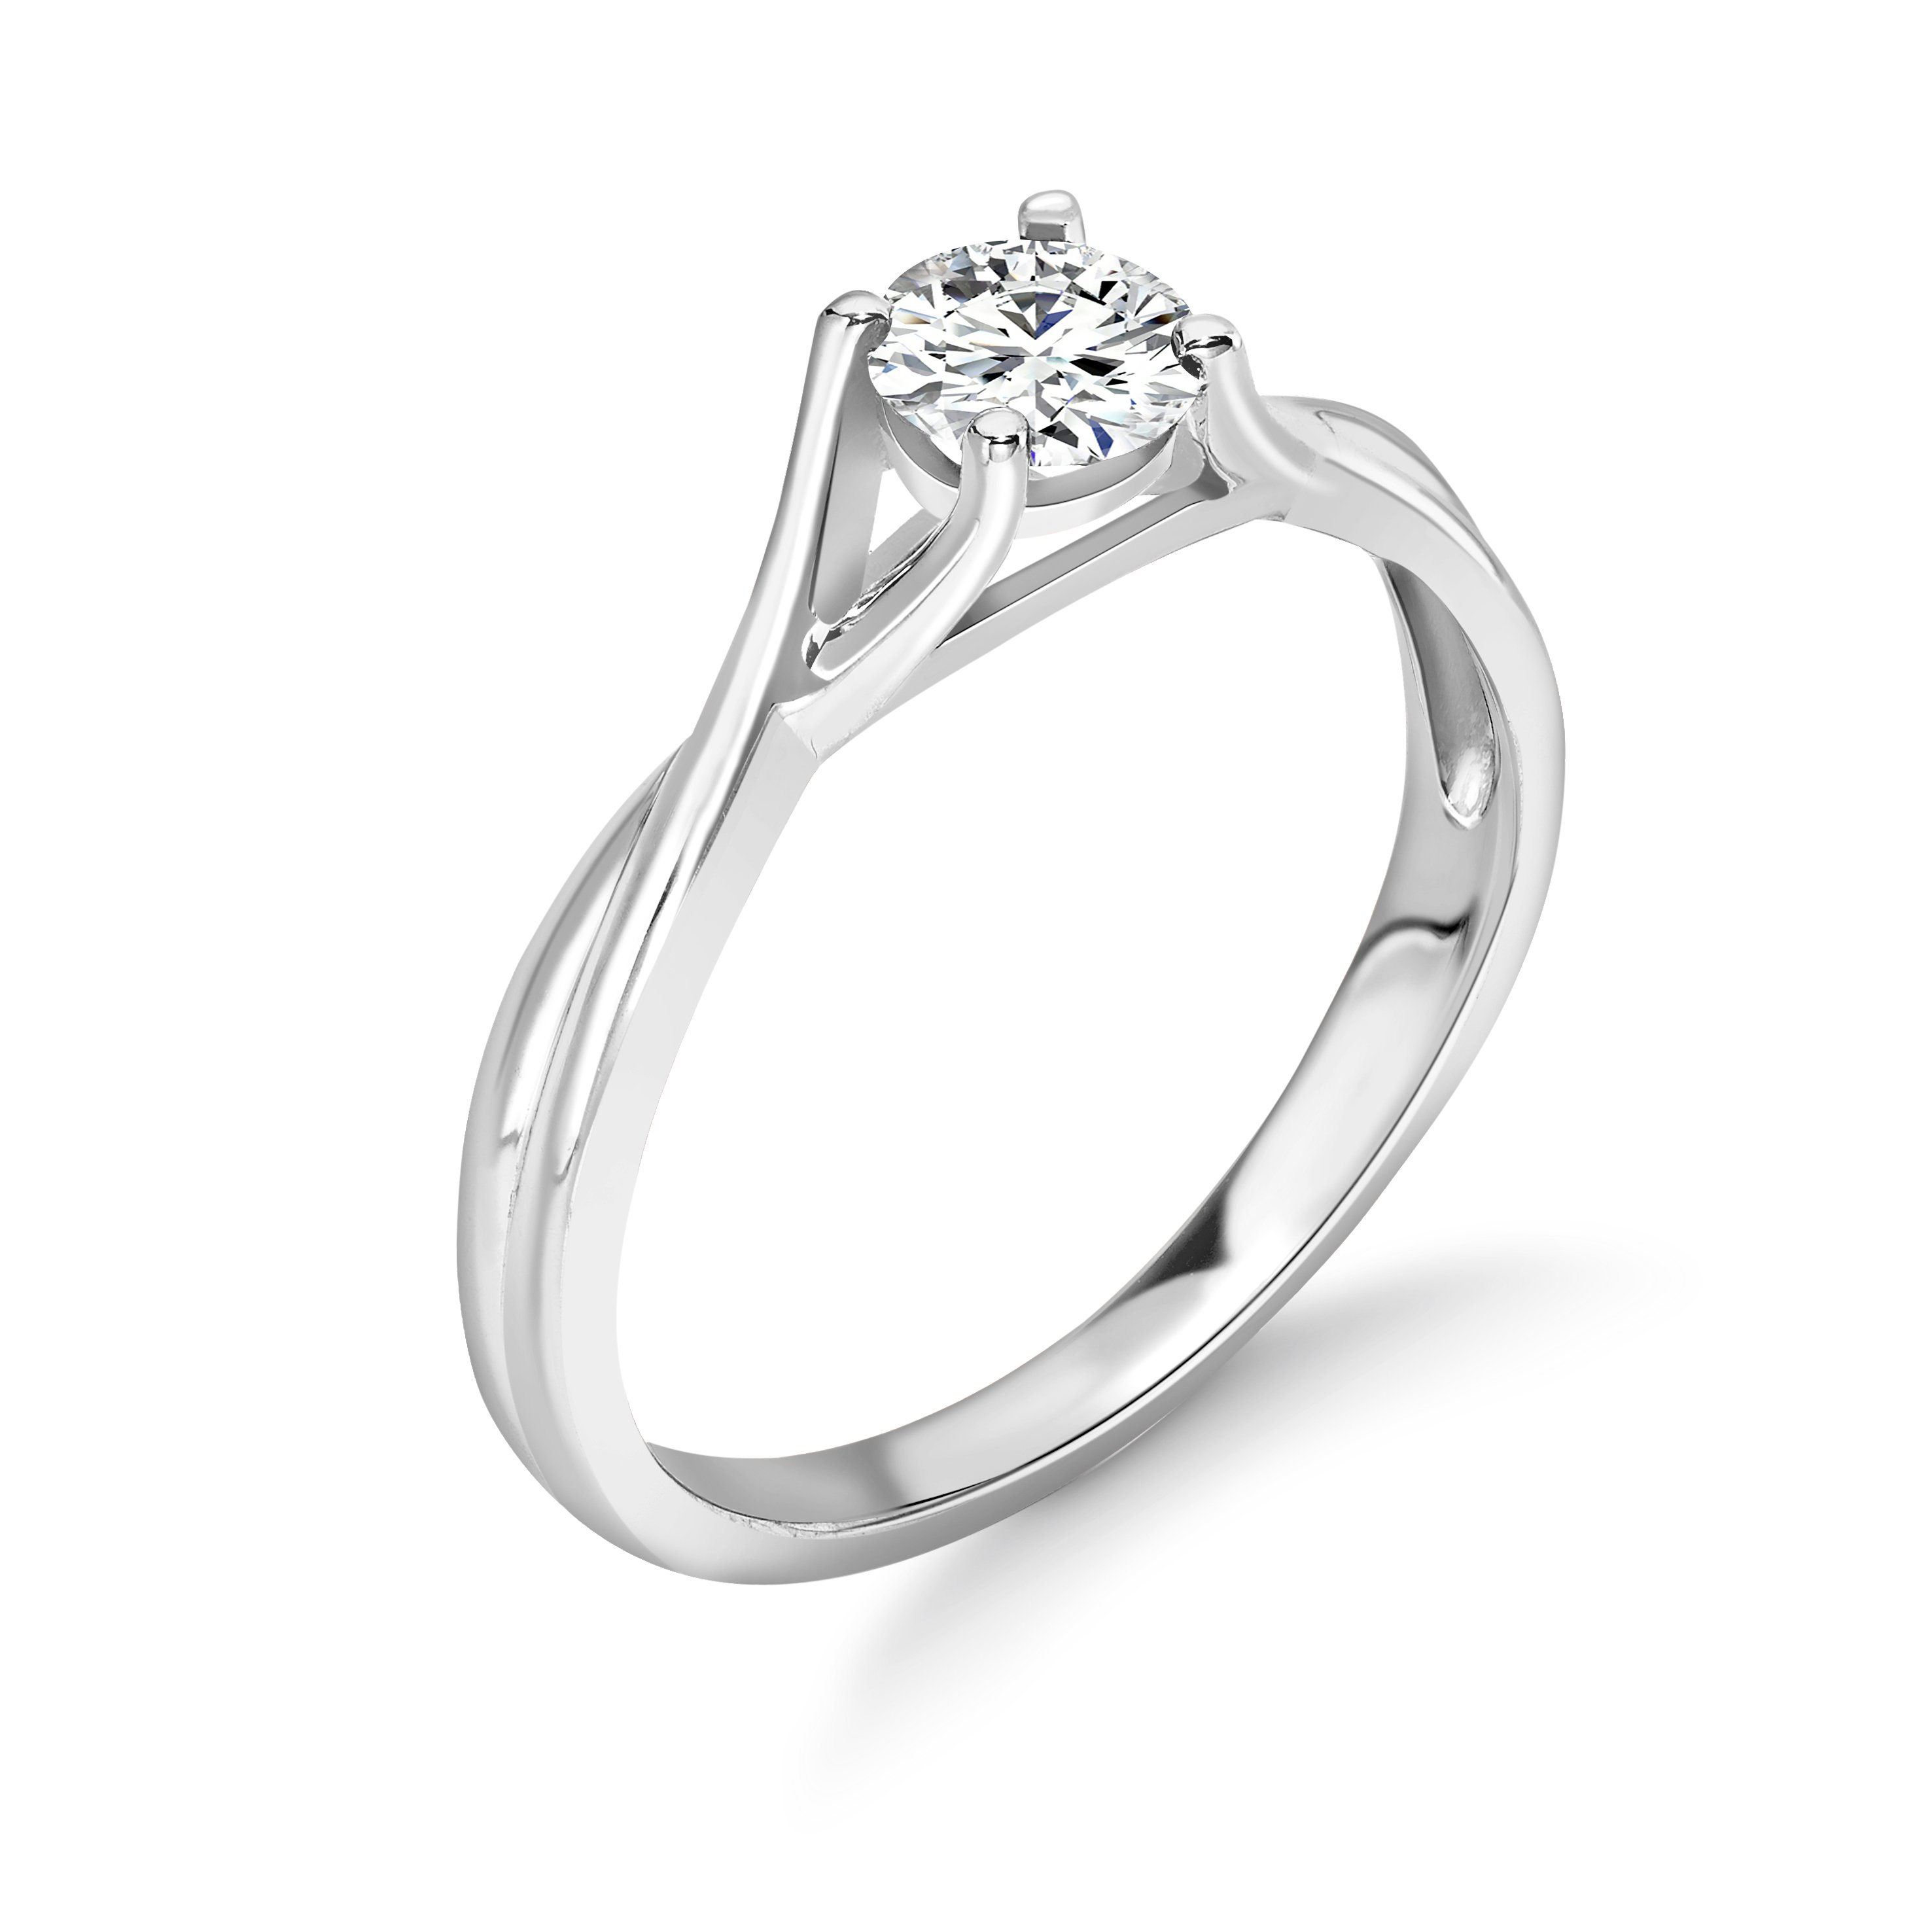 Contemprary Split Shoulder Cross Over Solitaire Diamond Engagement Rings